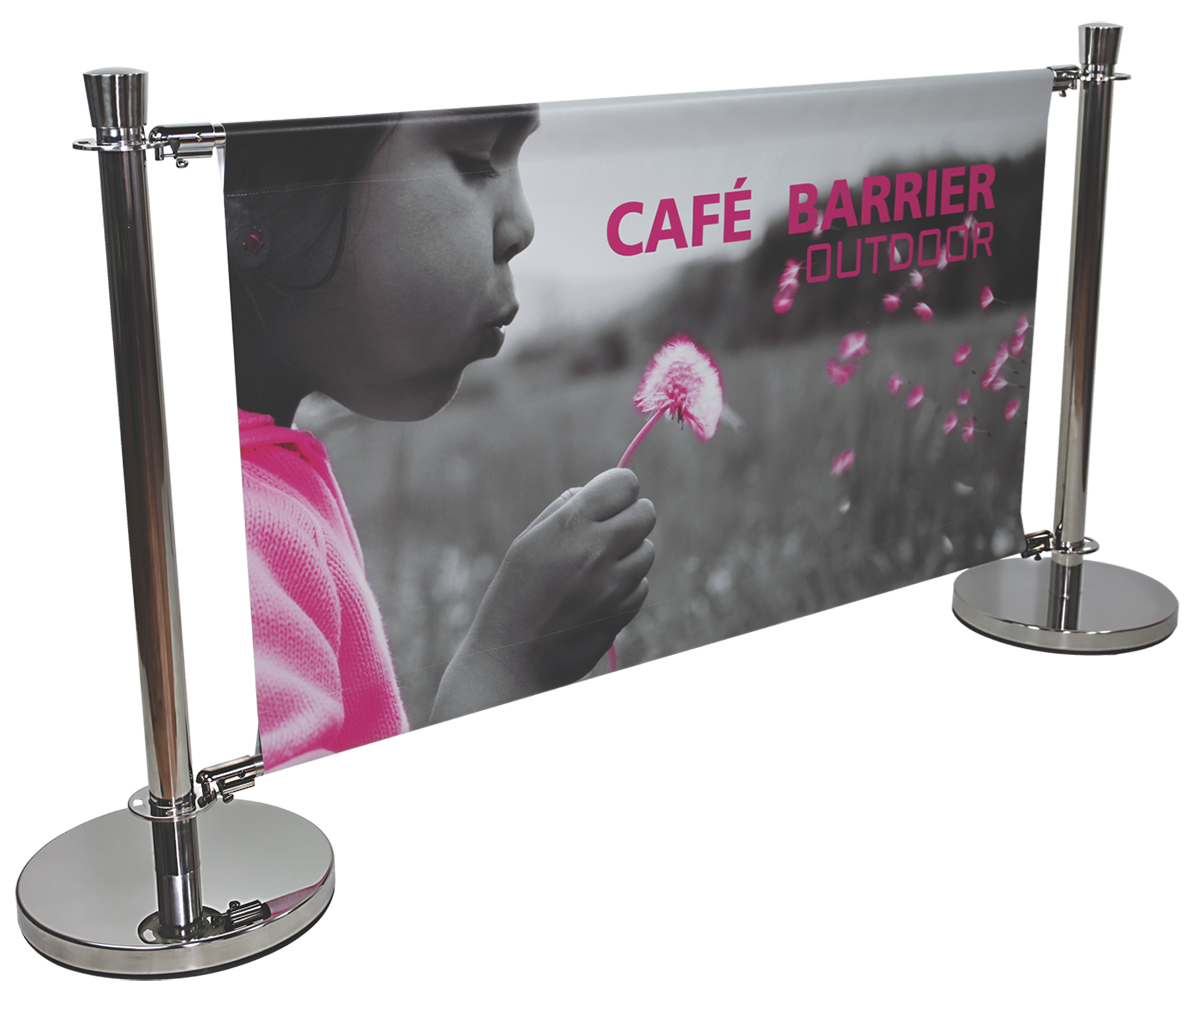 CAFE BARRIER 5FT X 3FT INDOOR-OUTDOOR SIGN SYSTEM